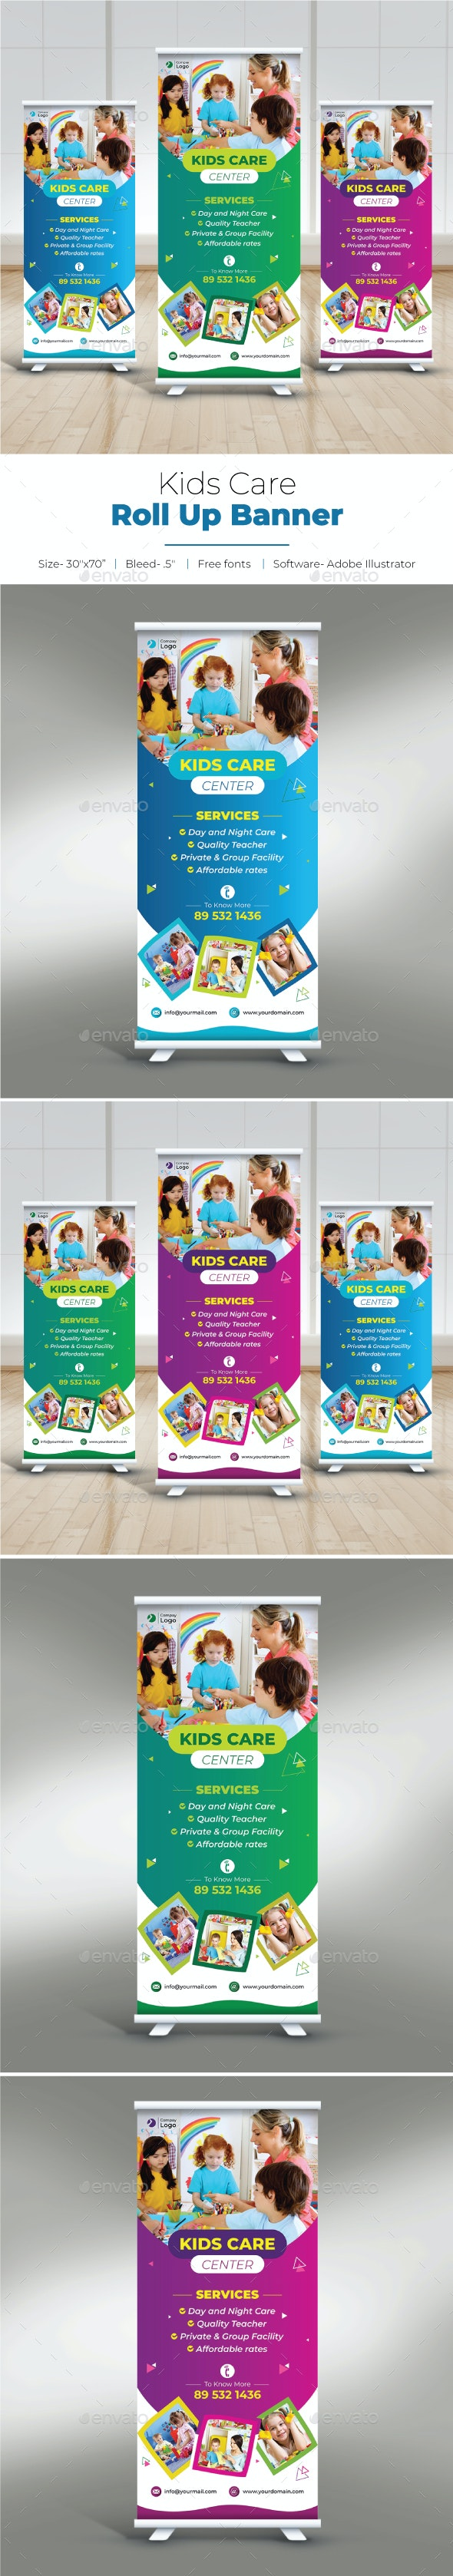 Kids Care Roll Up Banner - Signage Print Templates